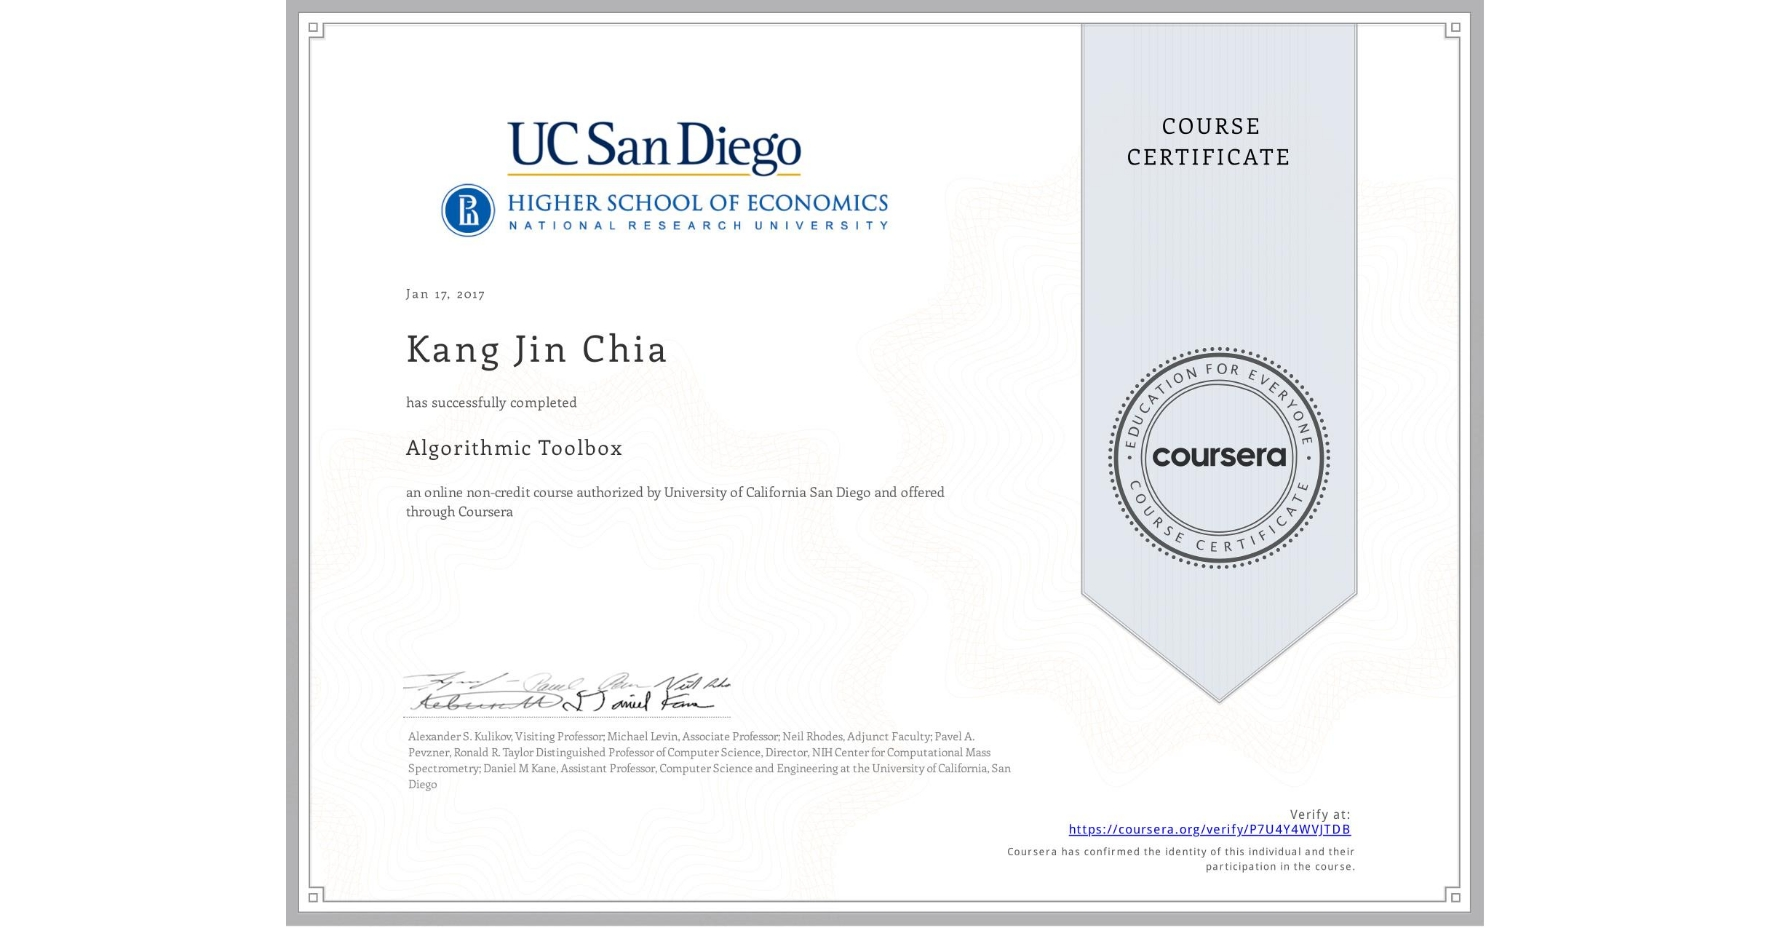 View certificate for Kang Jin  Chia, Algorithmic Toolbox, an online non-credit course authorized by University of California San Diego & National Research University Higher School of Economics and offered through Coursera